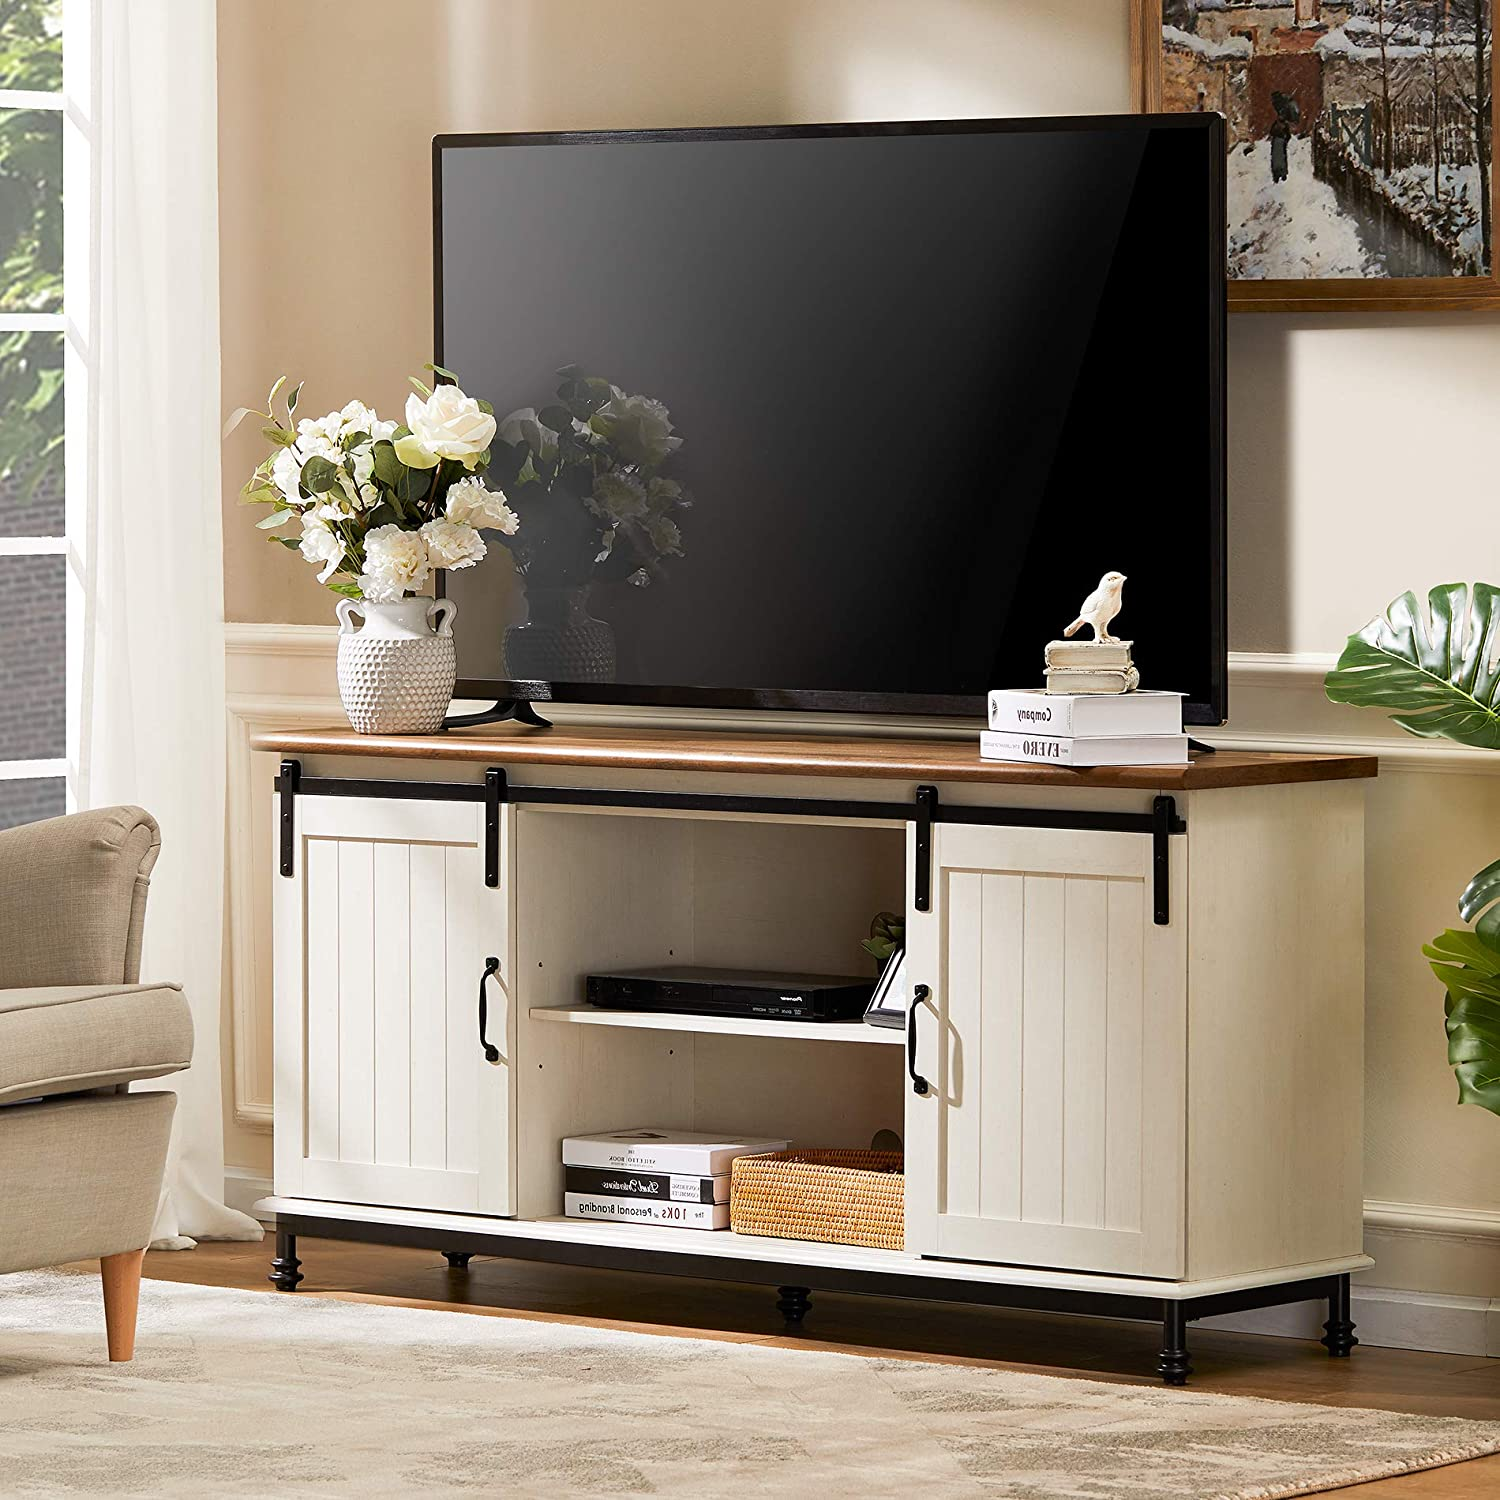 Many popular brands WAMPAT Bargain sale Farmhouse TV Stand for TVs Safet Up with 65